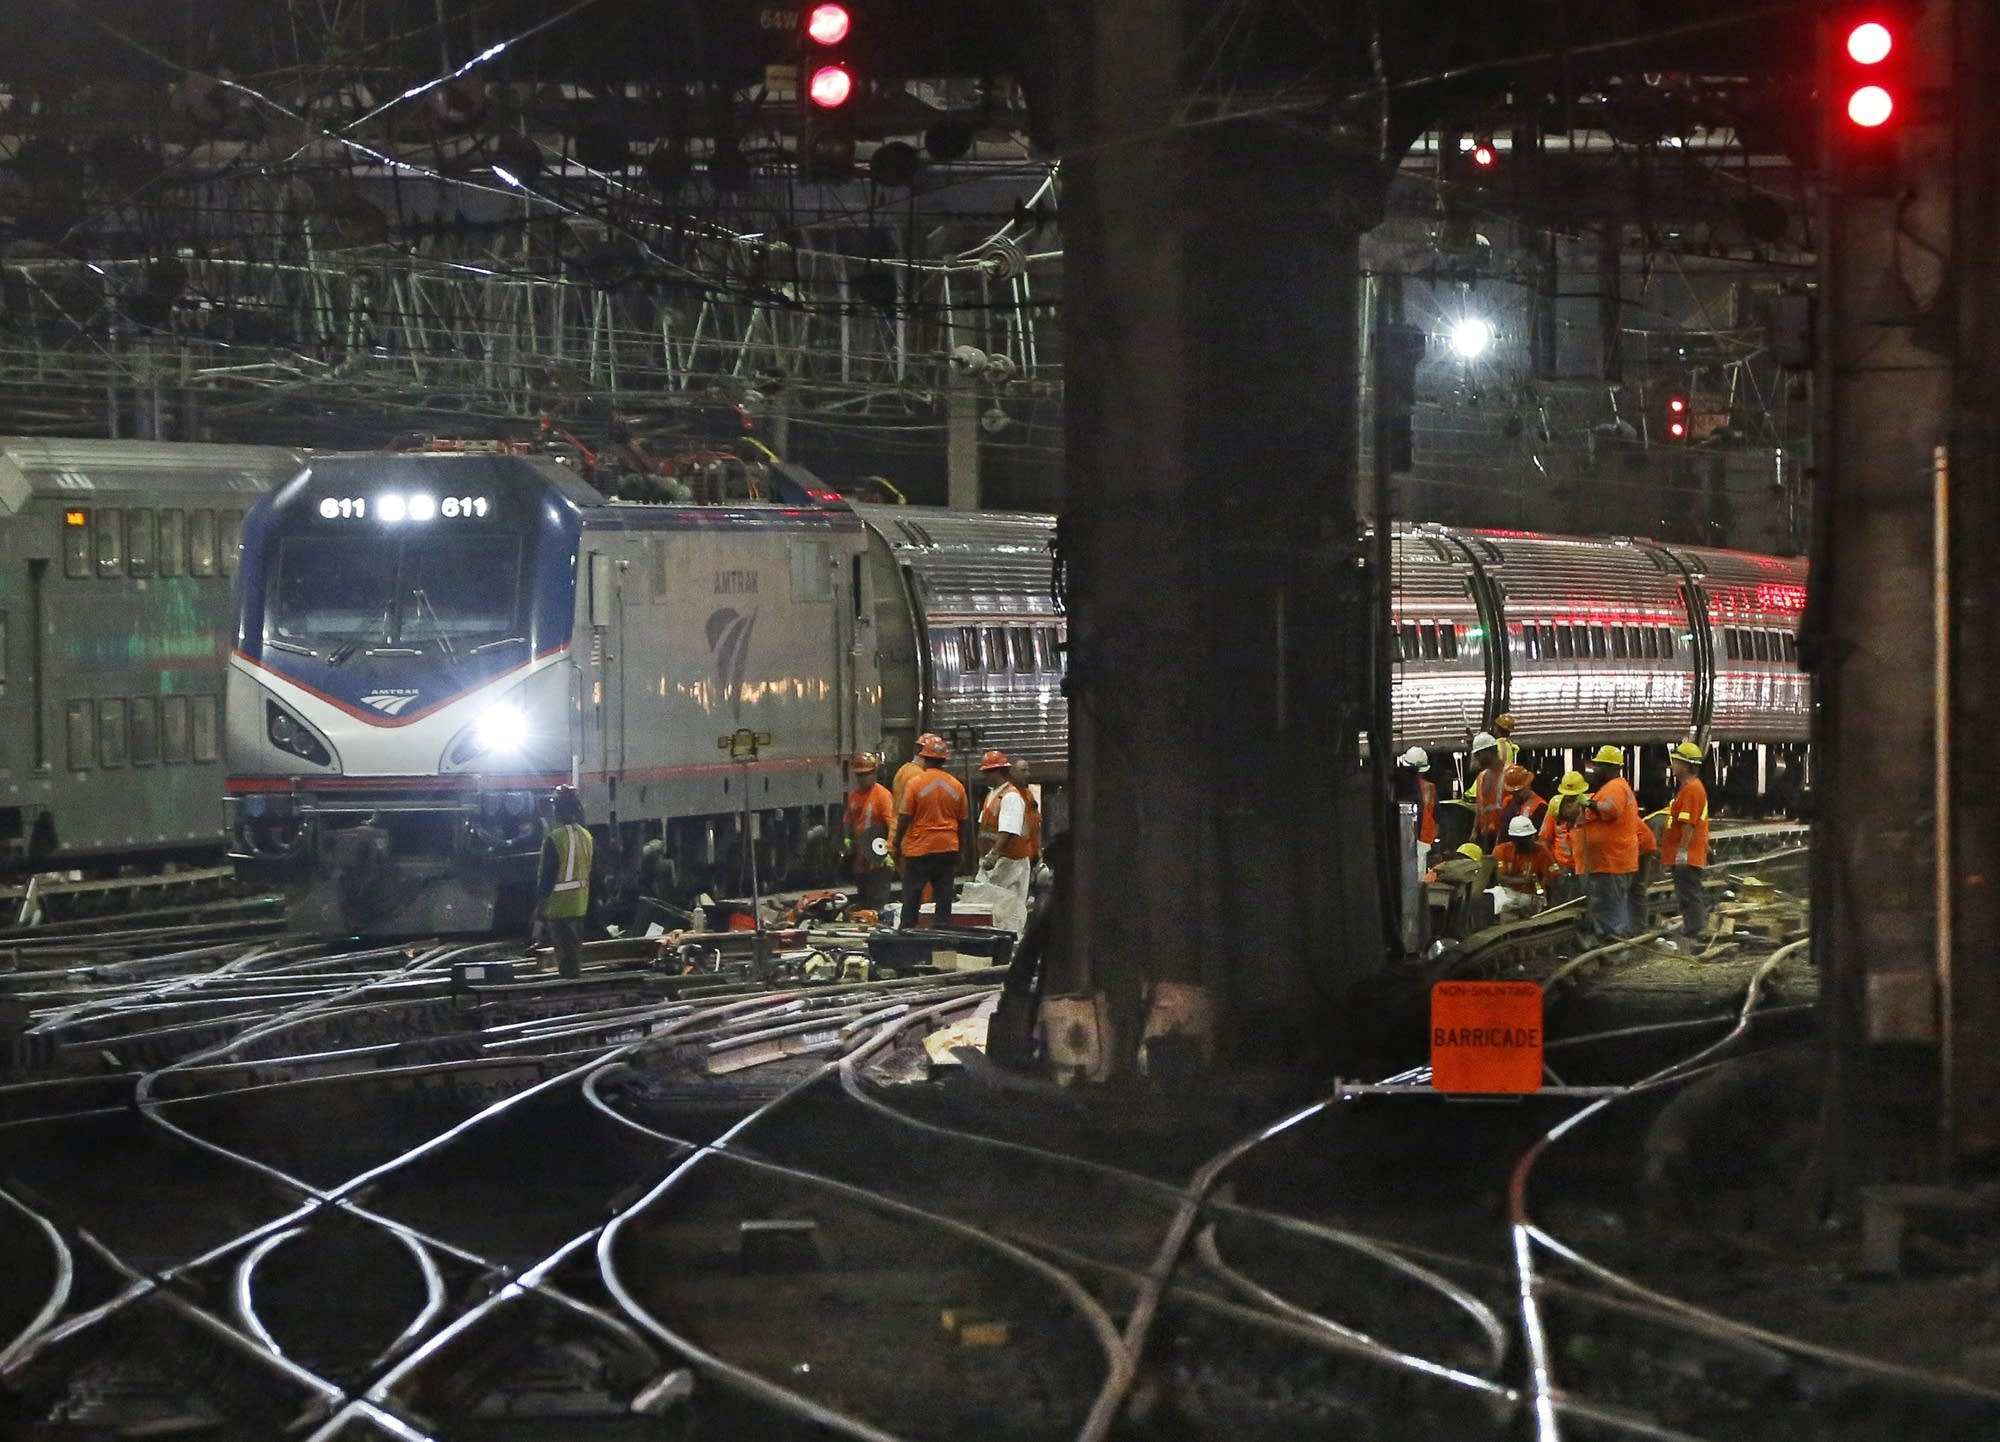 Infrastructure renewal work beneath Penn Station